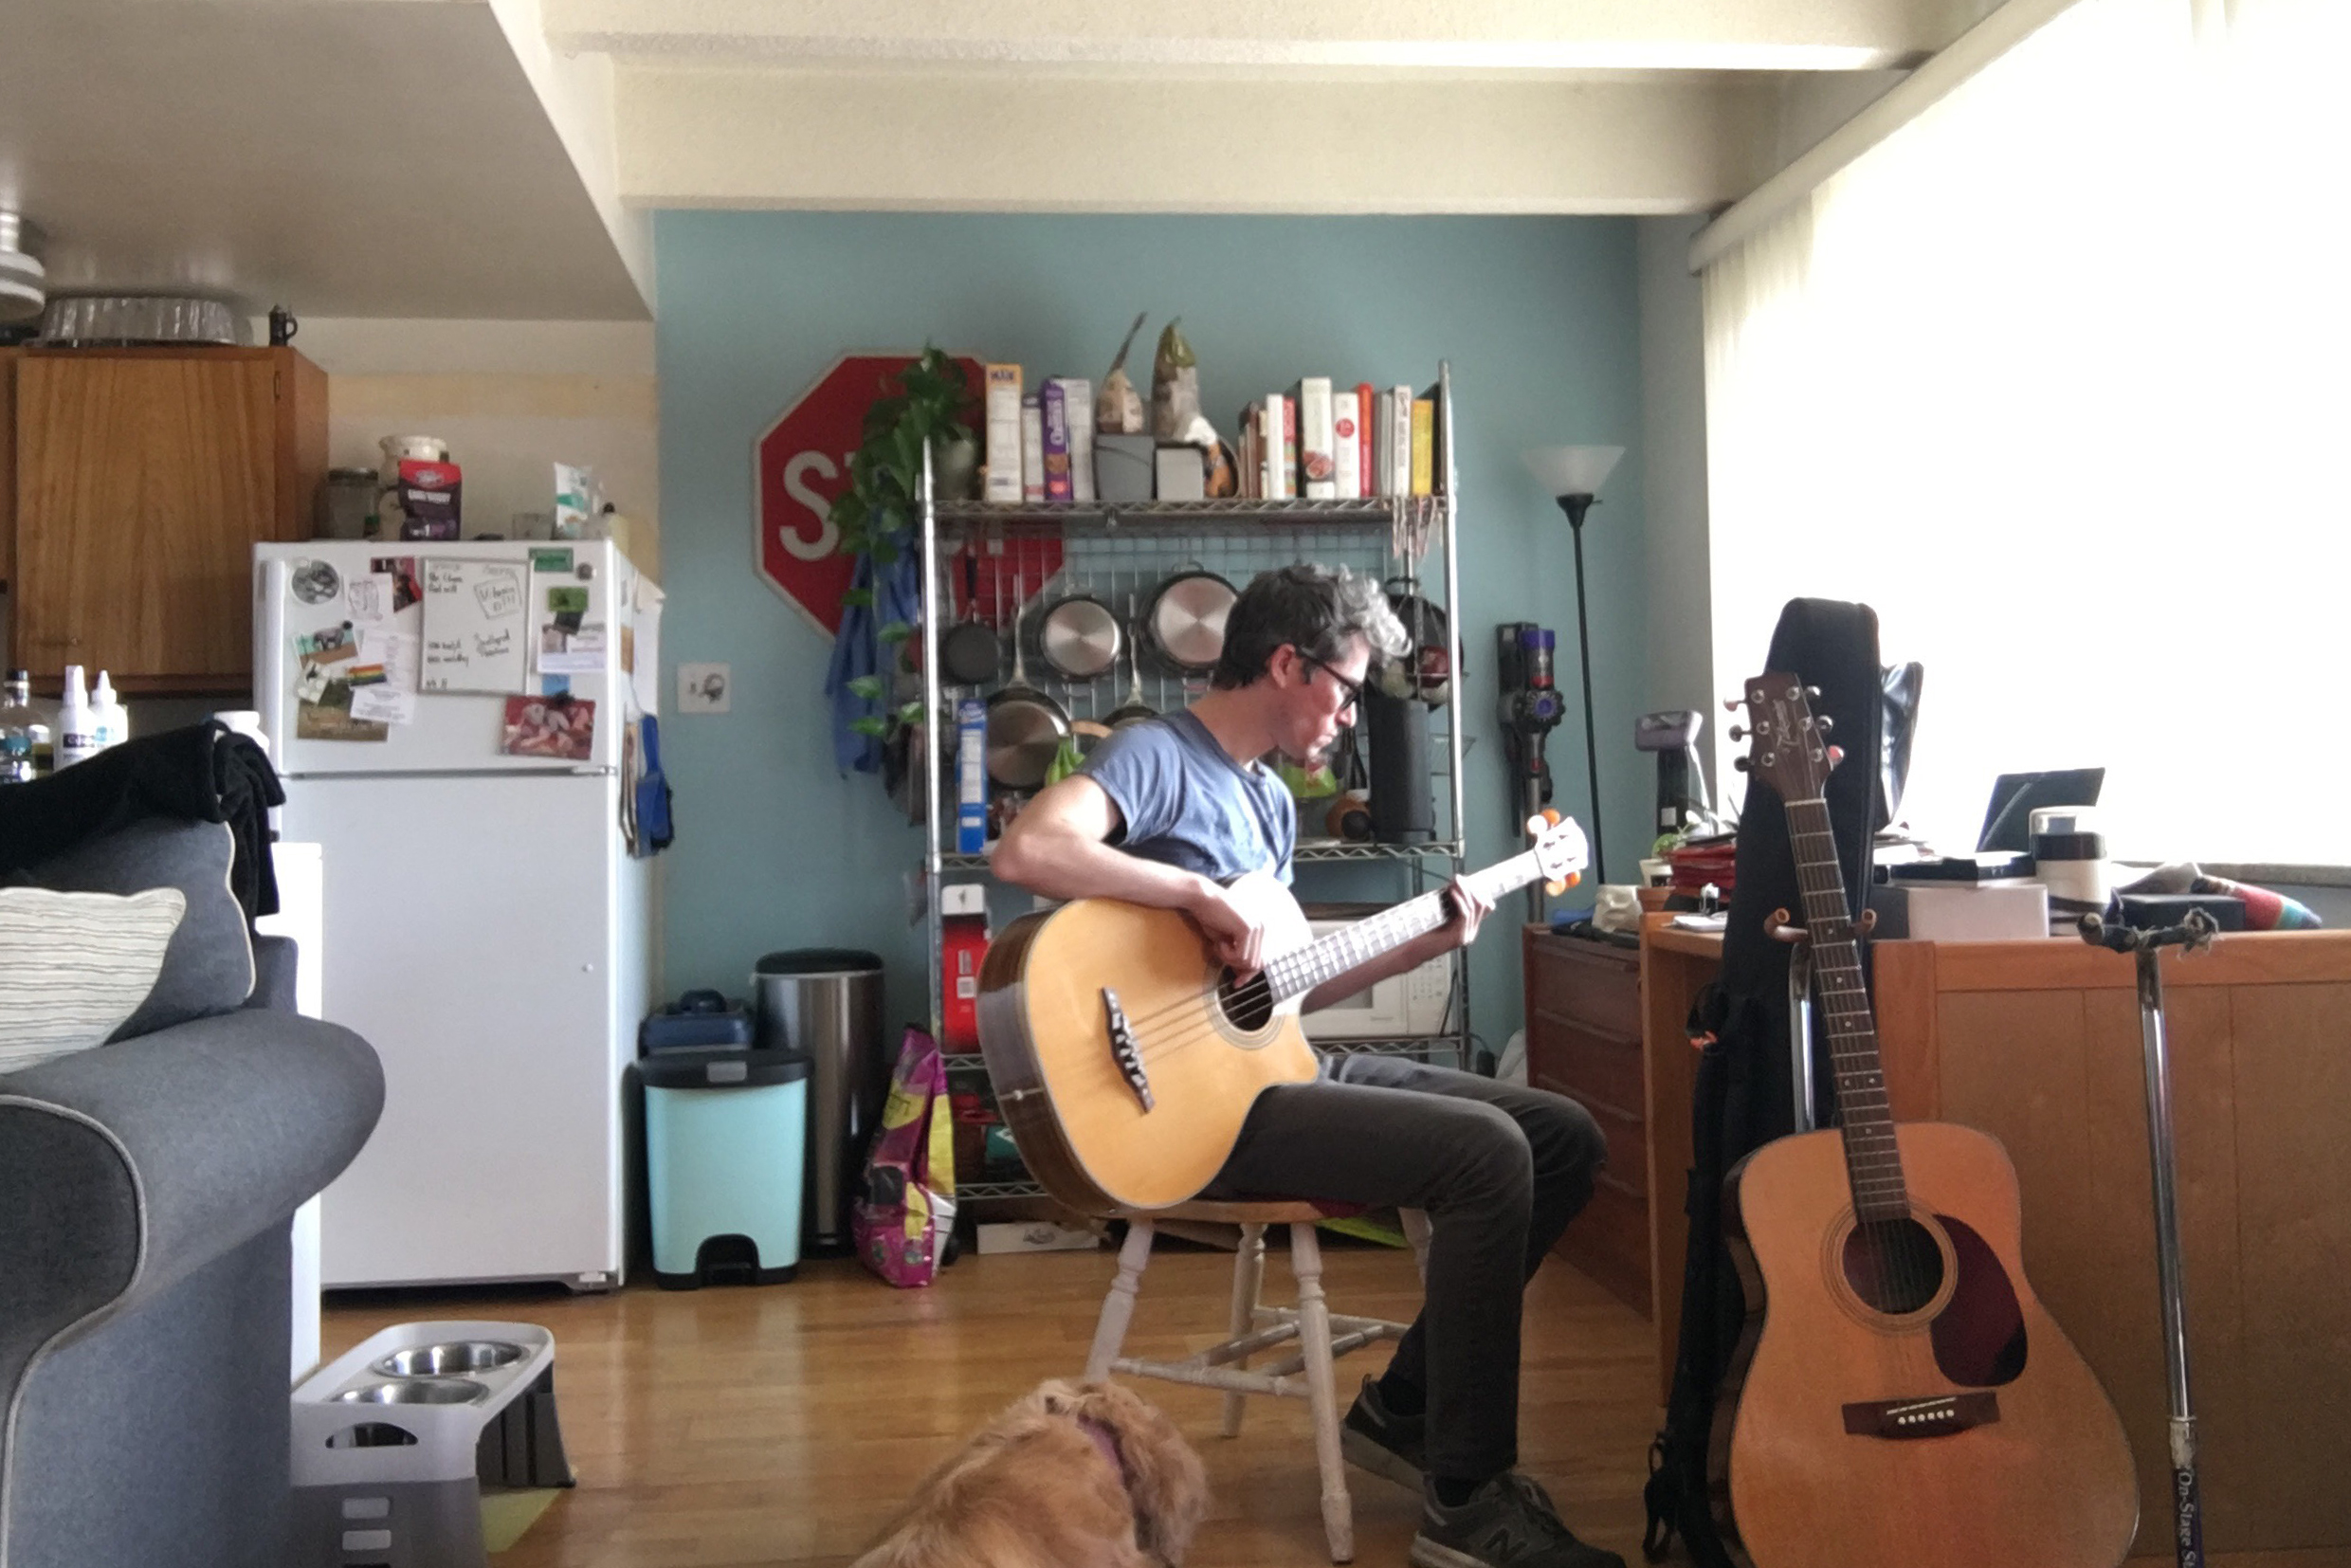 Michael King plays his guitar at his home after getting his hours cut from his job as a baker, March 31, 2020.